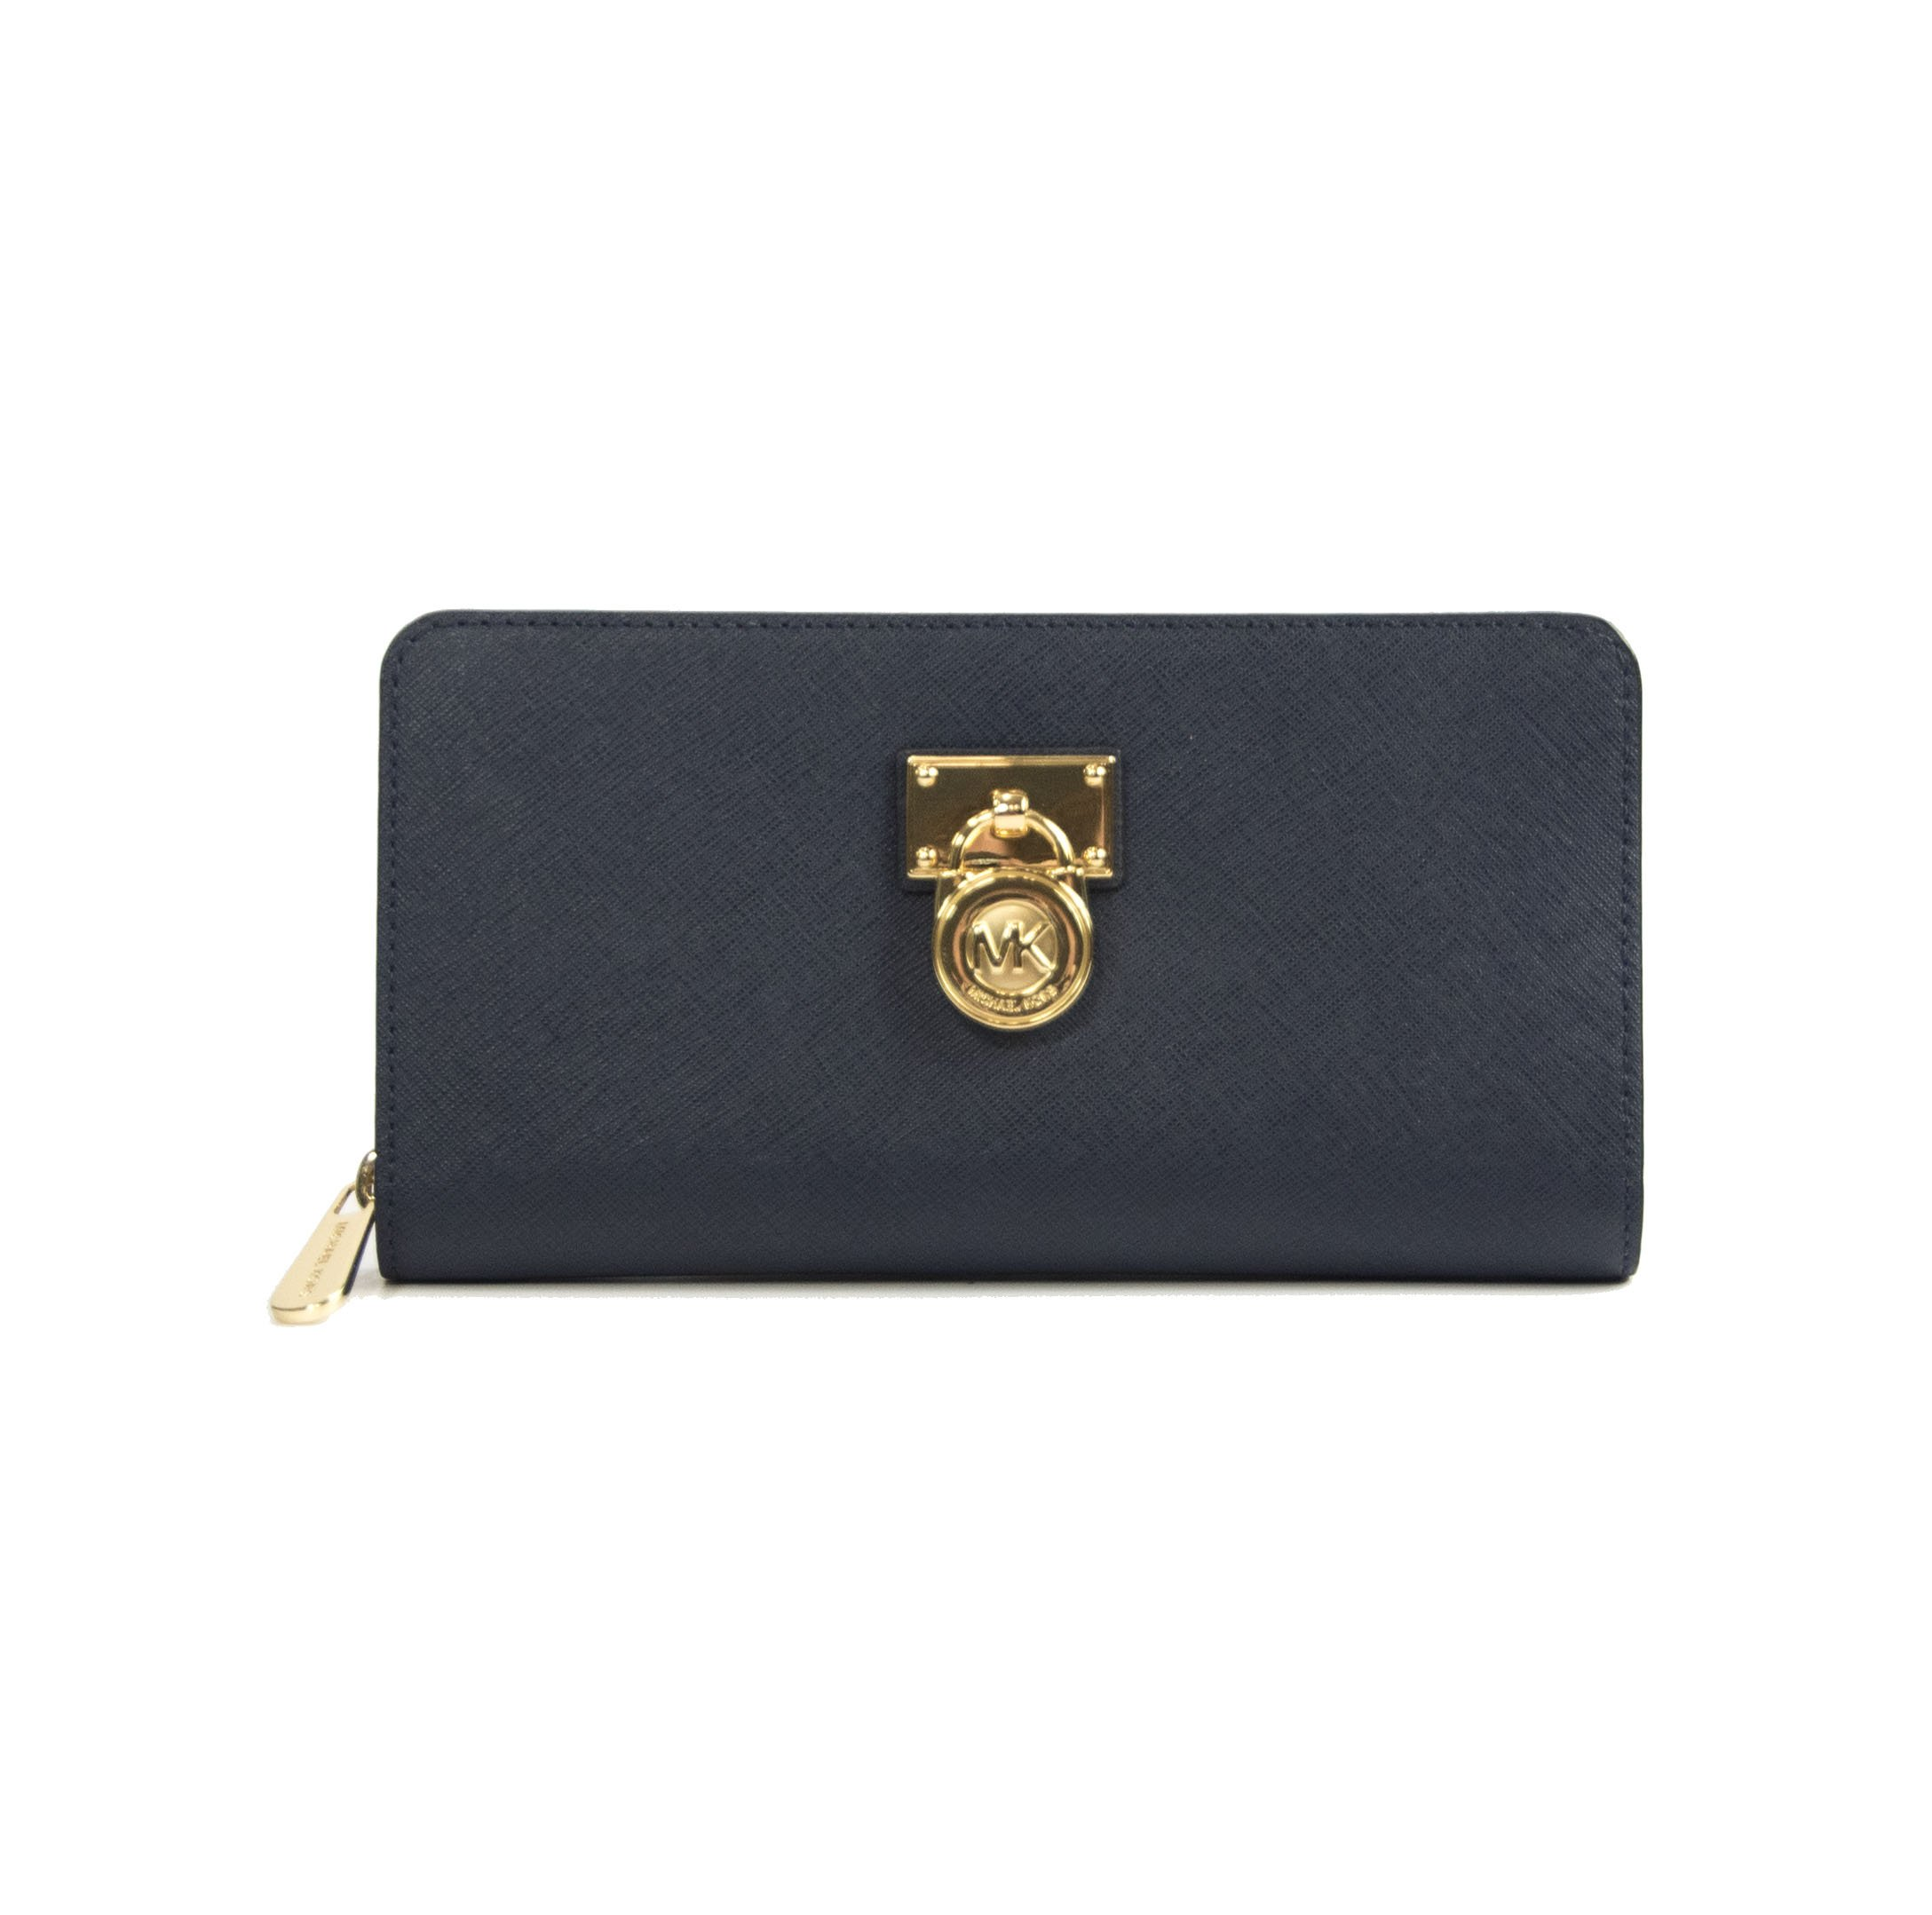 Michael Kors Navy Saffiano Leather Hamilton Travel Wallet by Michael Kors